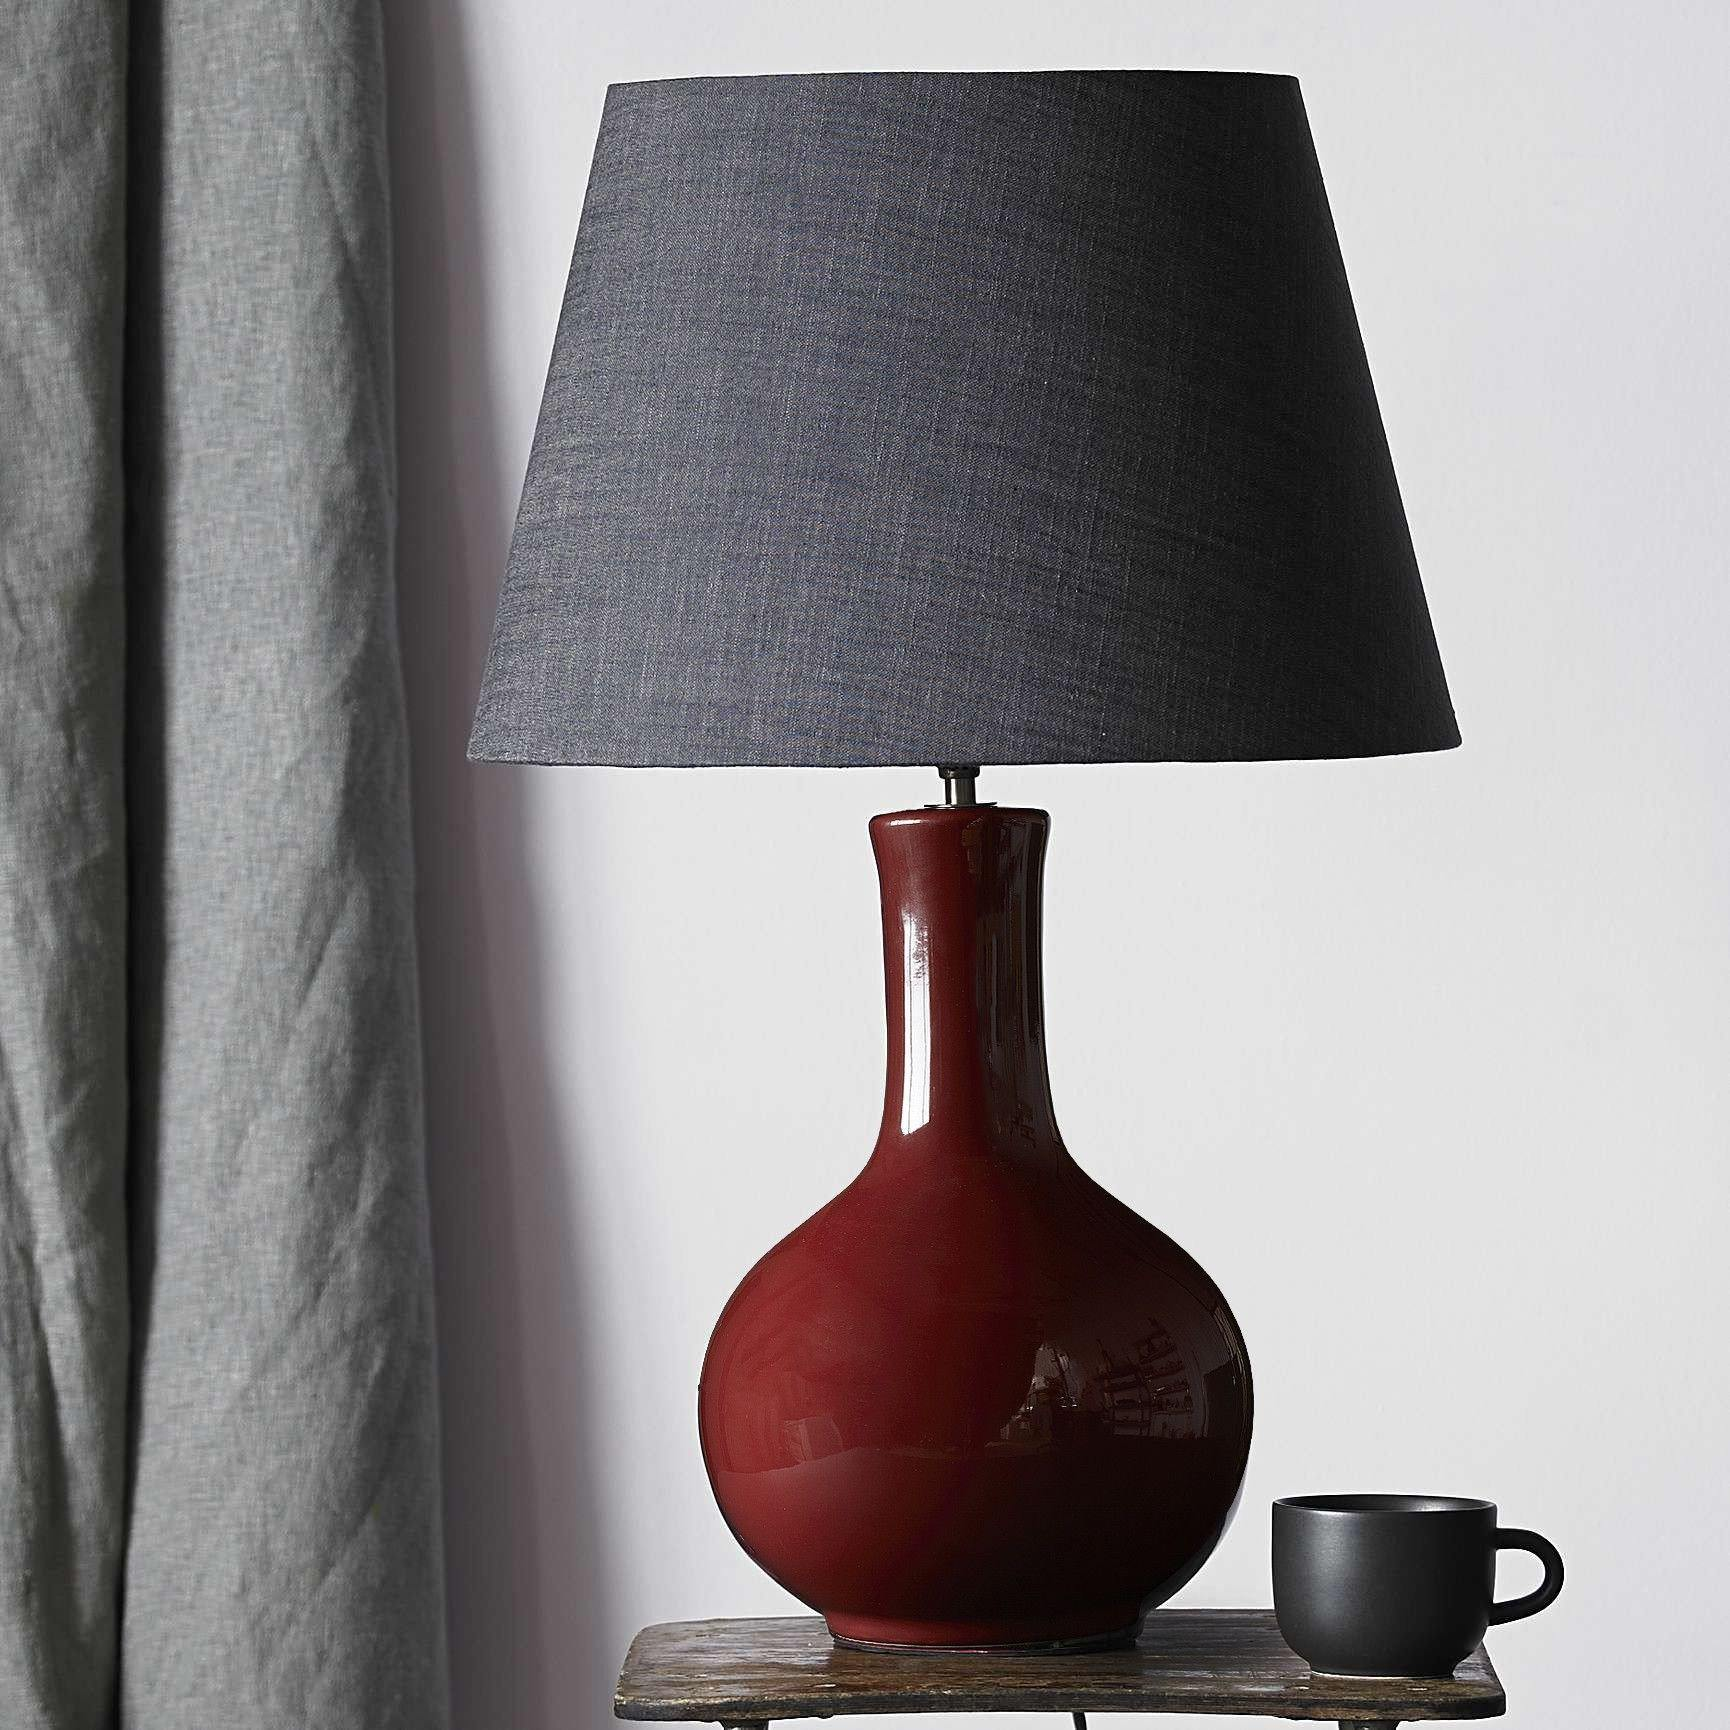 Pooky nellie table lamp in an oxblood glaze - No.42 Interiors